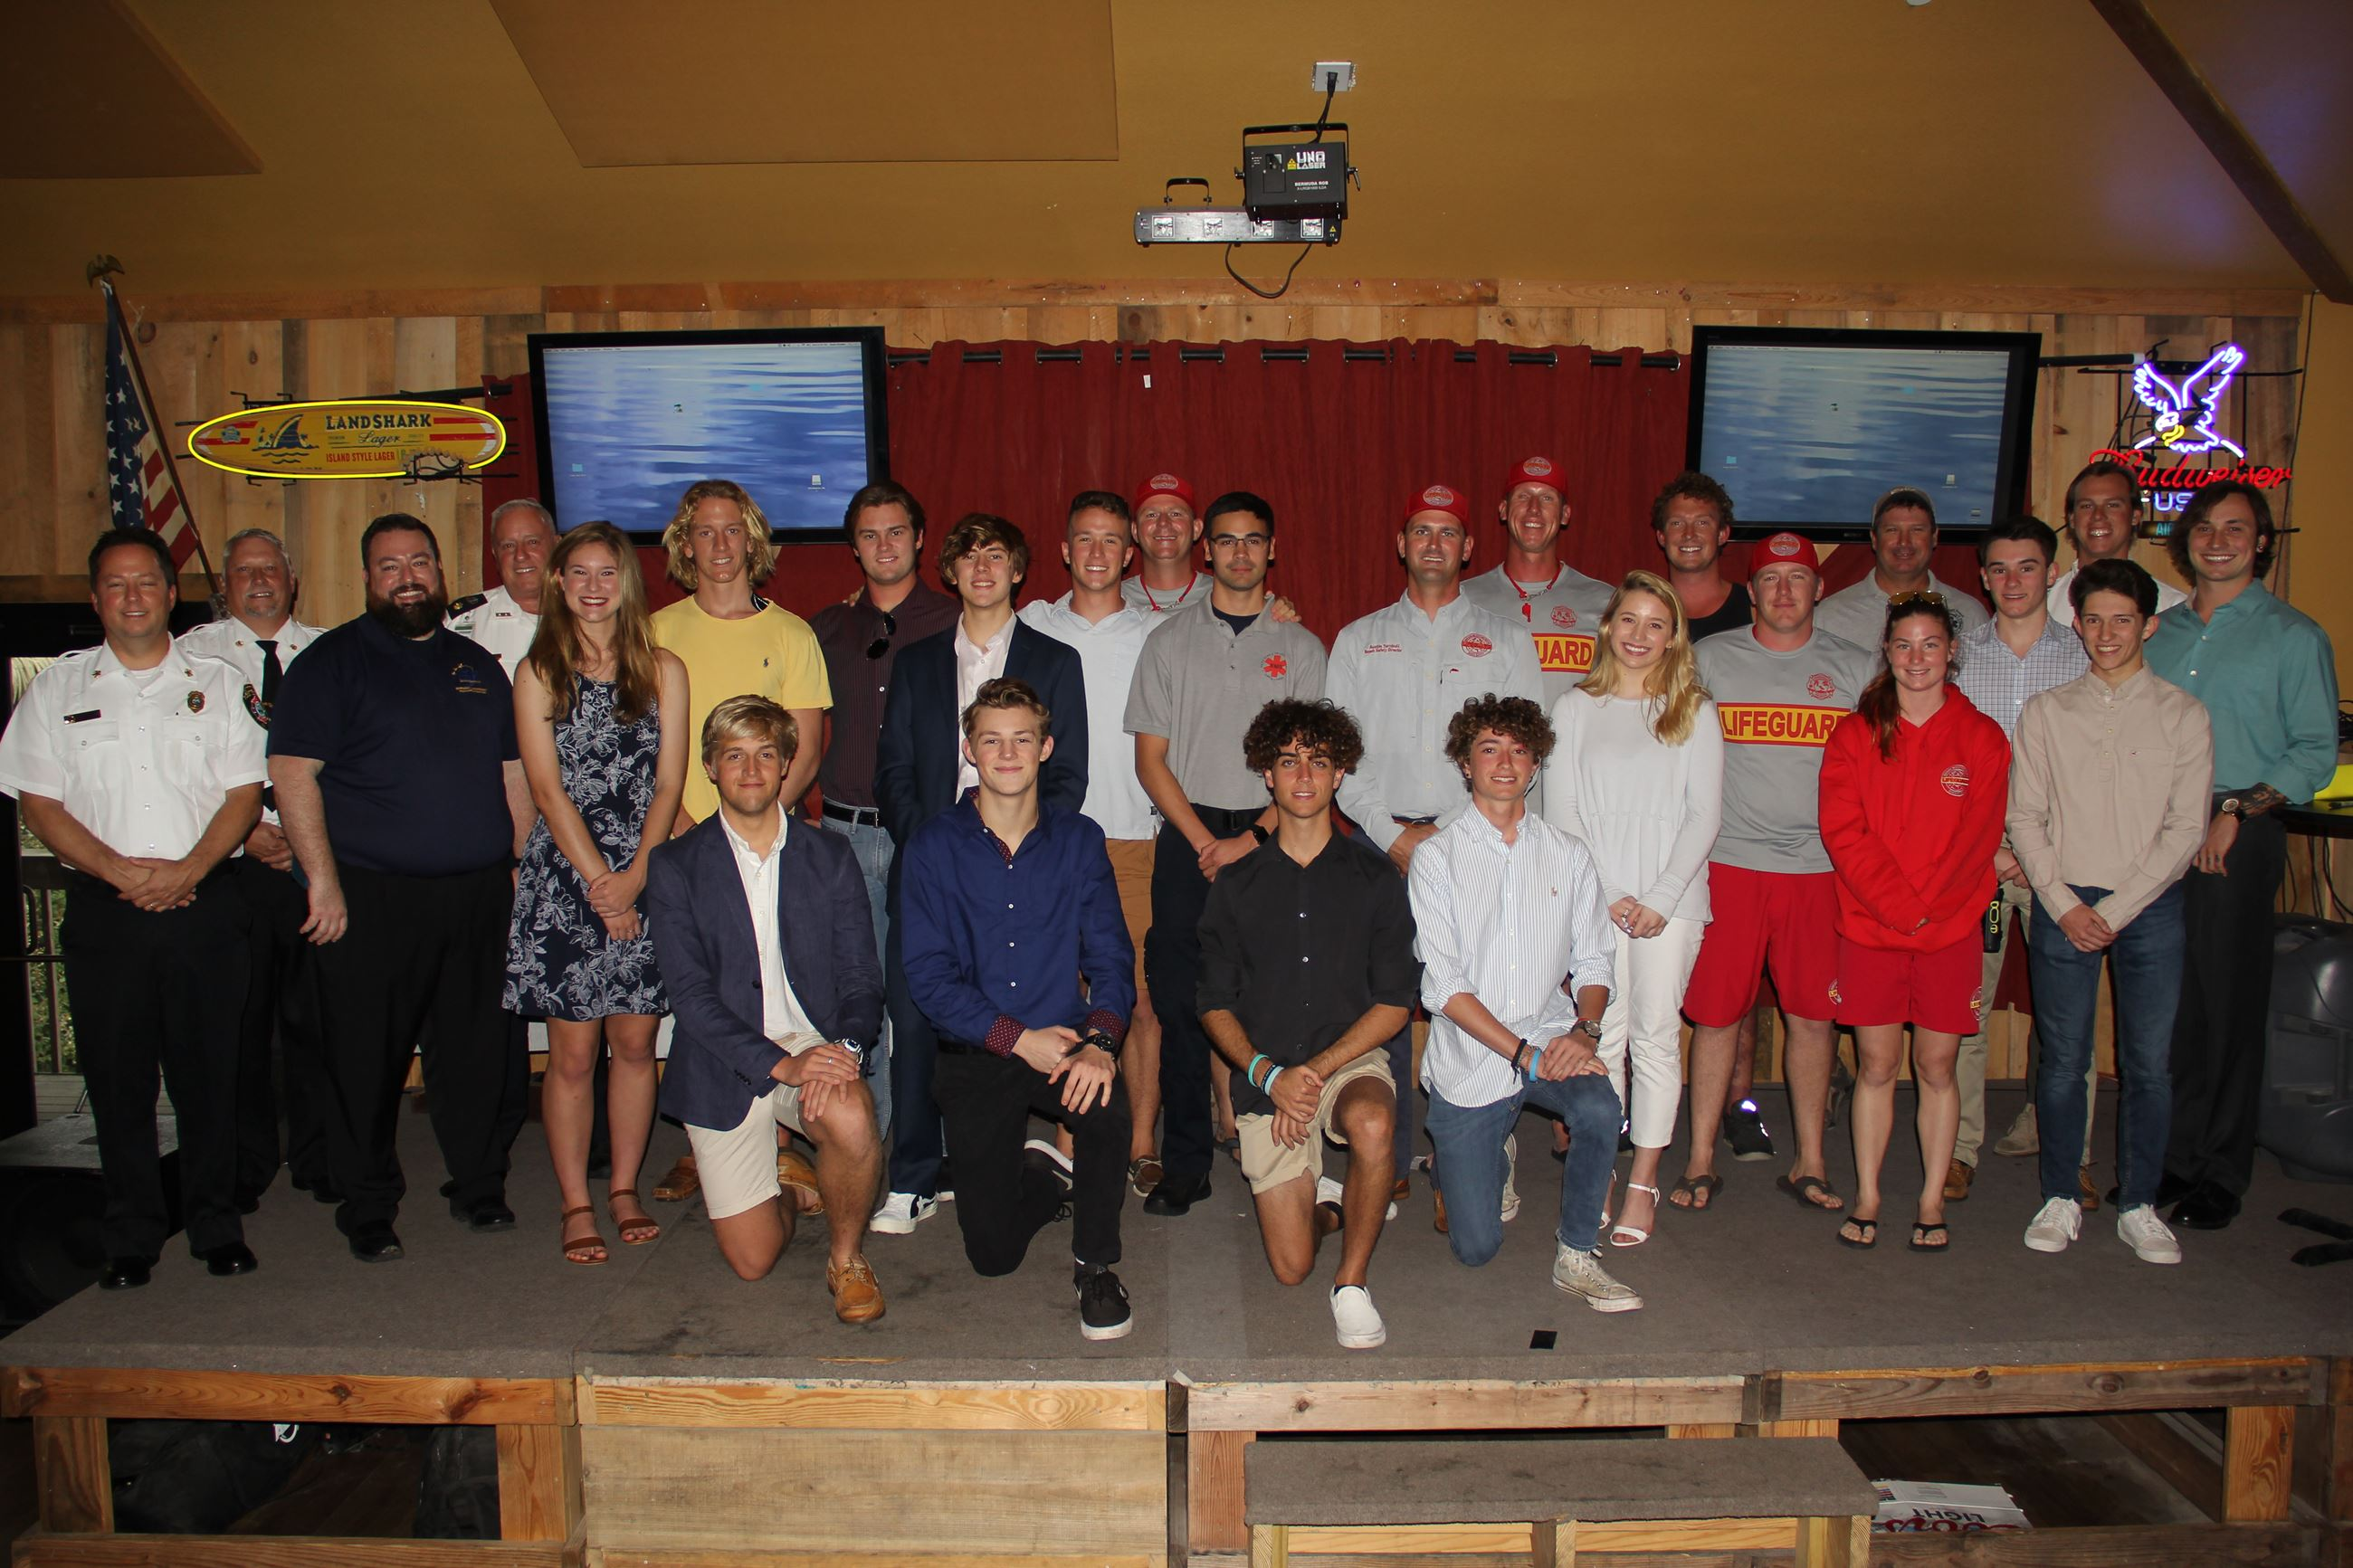 2019 beach lifeguard graduation